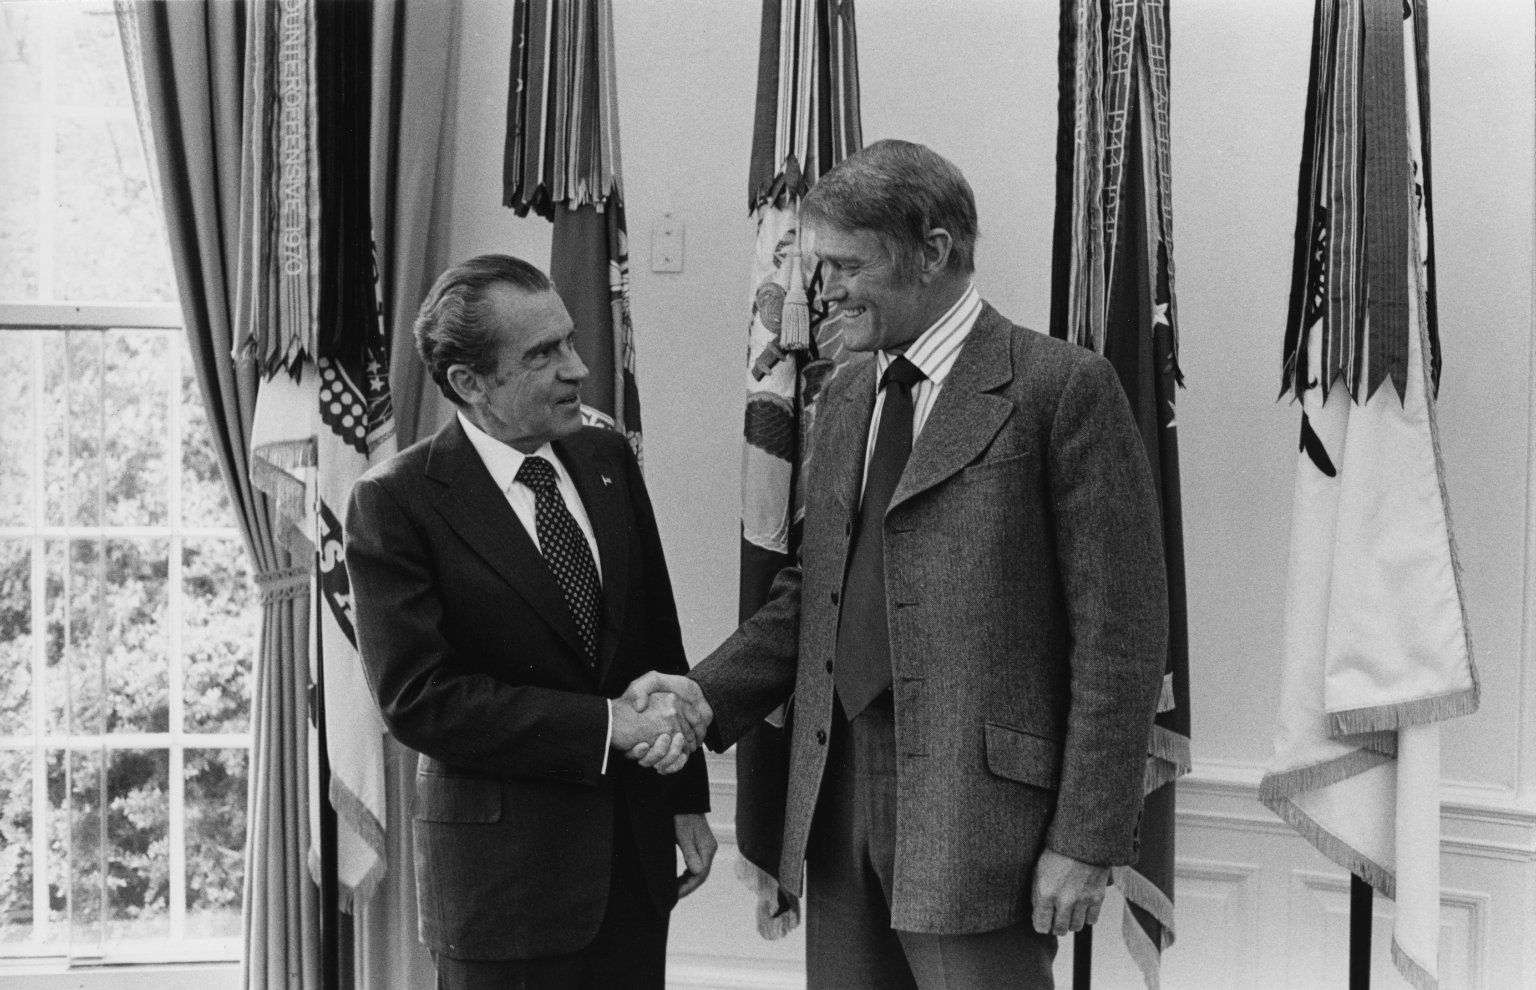 Richard Nixon shakes hands with actor Chuck Connors (November 1973). Oliver F. Atkins photograph collection, Box 21, Folder 7. George Mason University. Libraries. Special Collections & Archives. Copyright not held by George Mason University Libraries. Restricted to personal, non-commercial use only. For permission to publish, contact Special Collections and Archives.